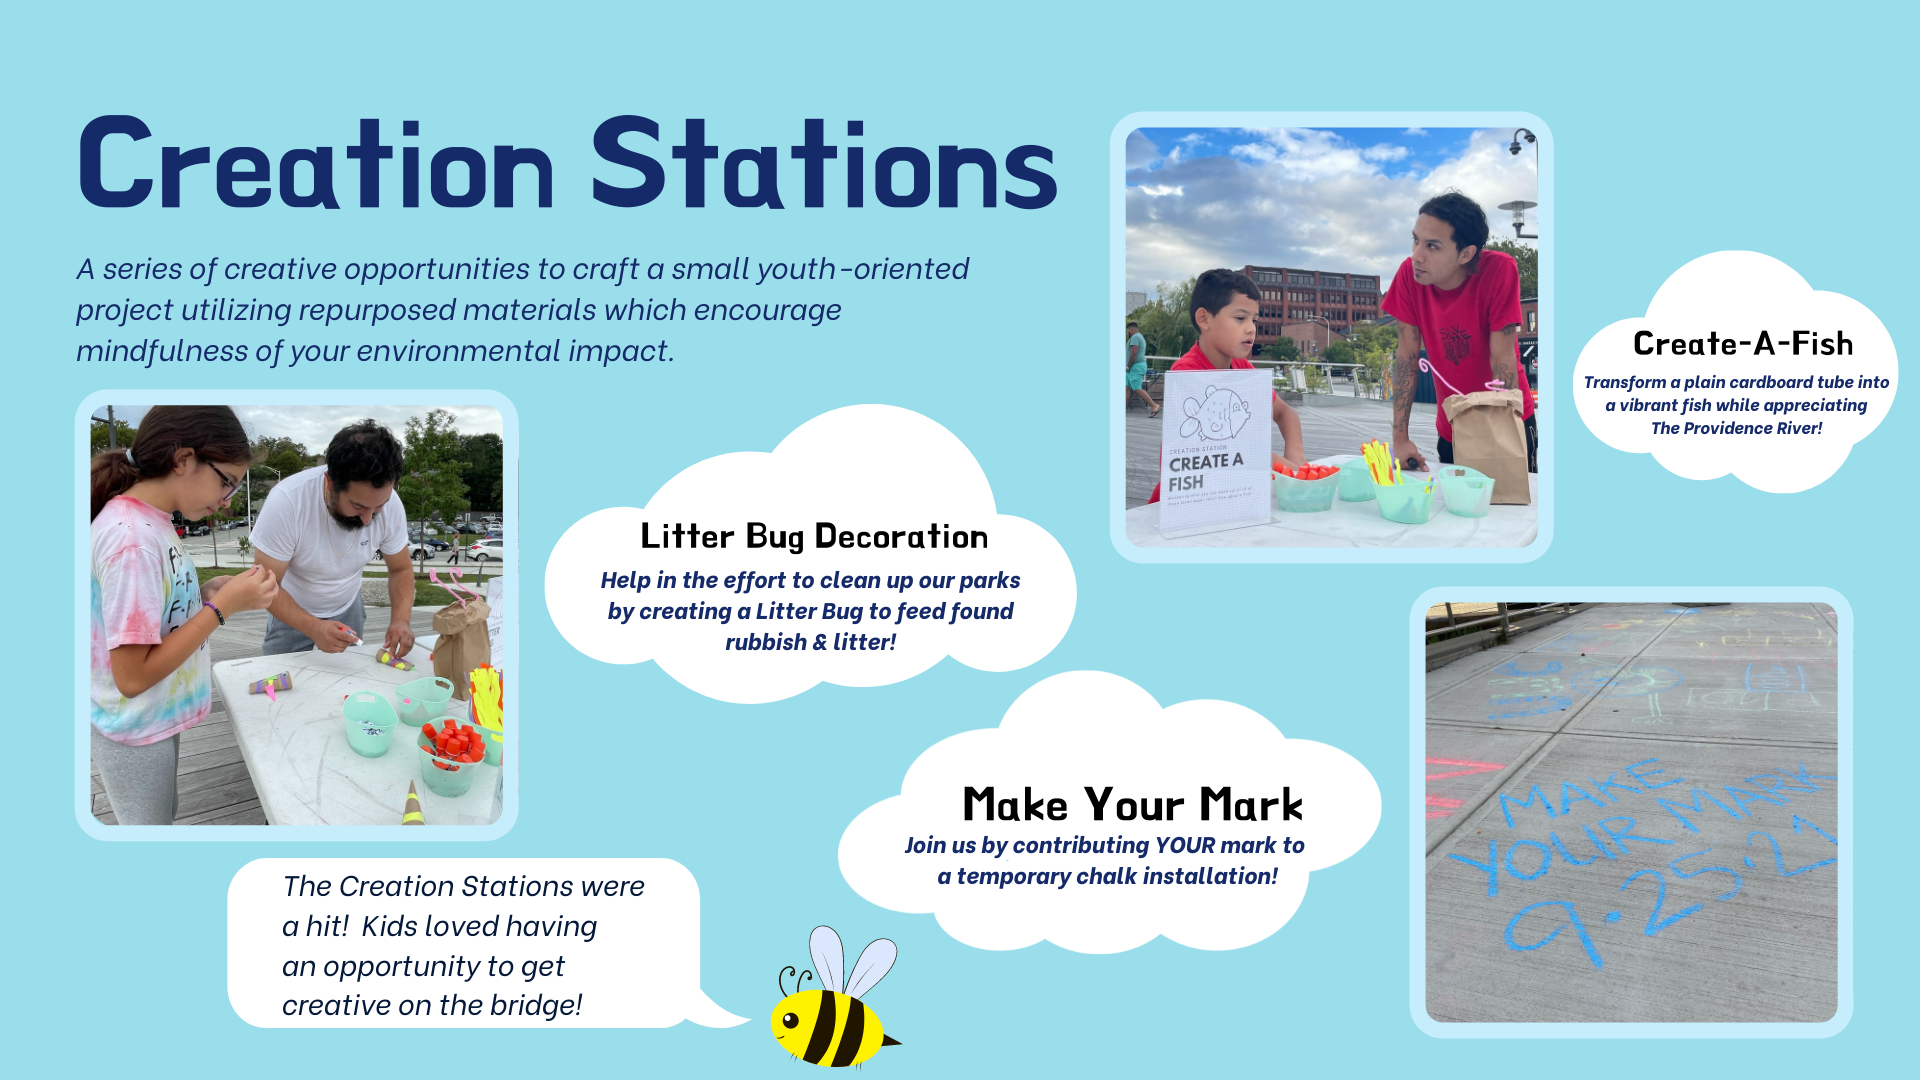 Creation Stations